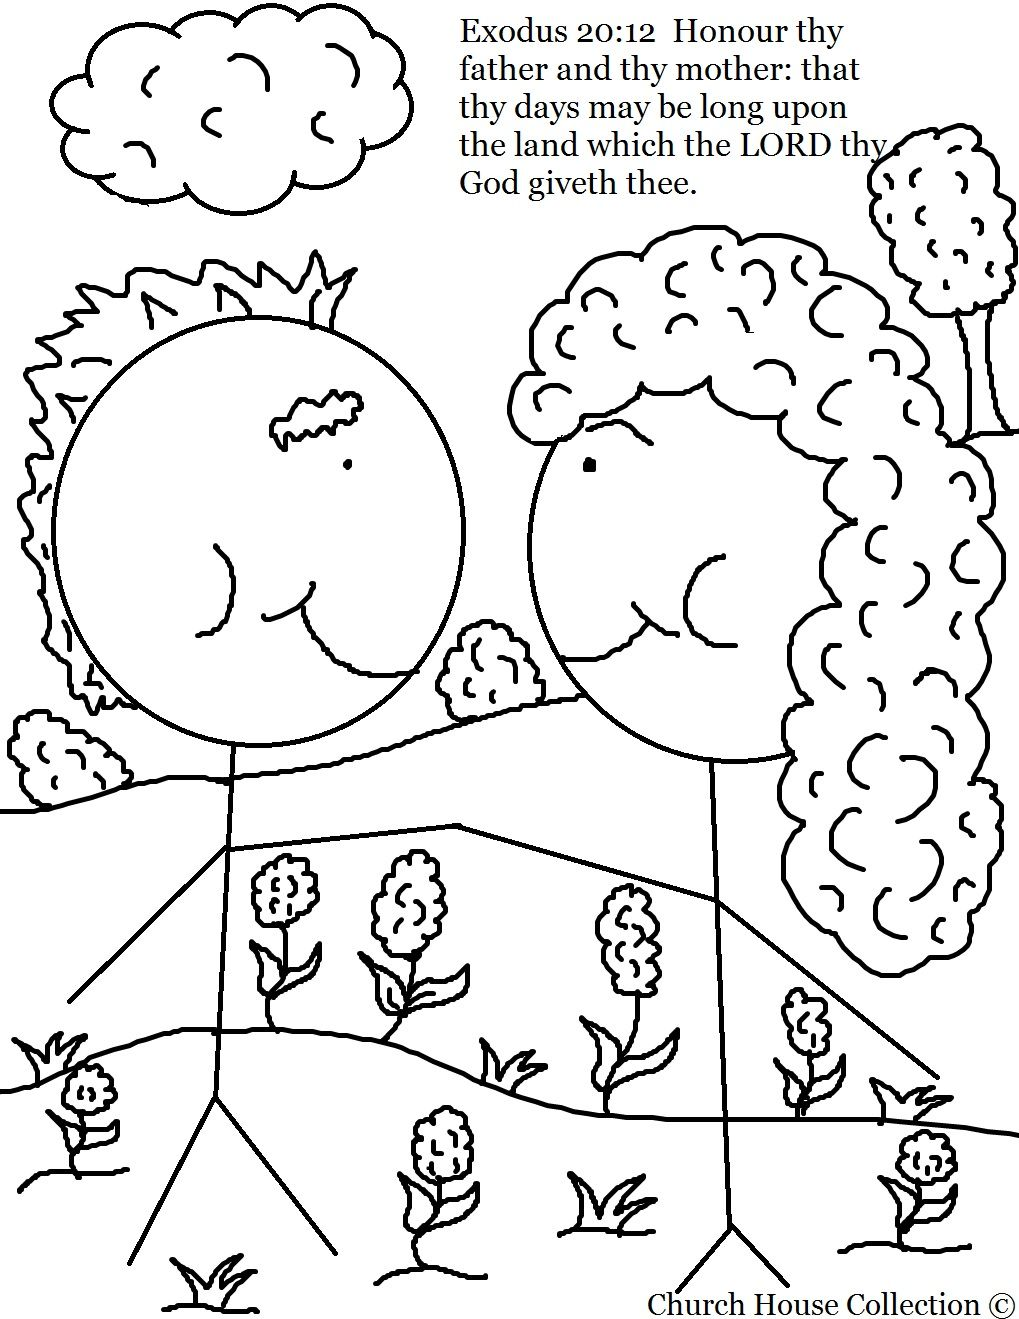 Honor Your Mother And Father Coloring Page Exodus 20 12 Sunday